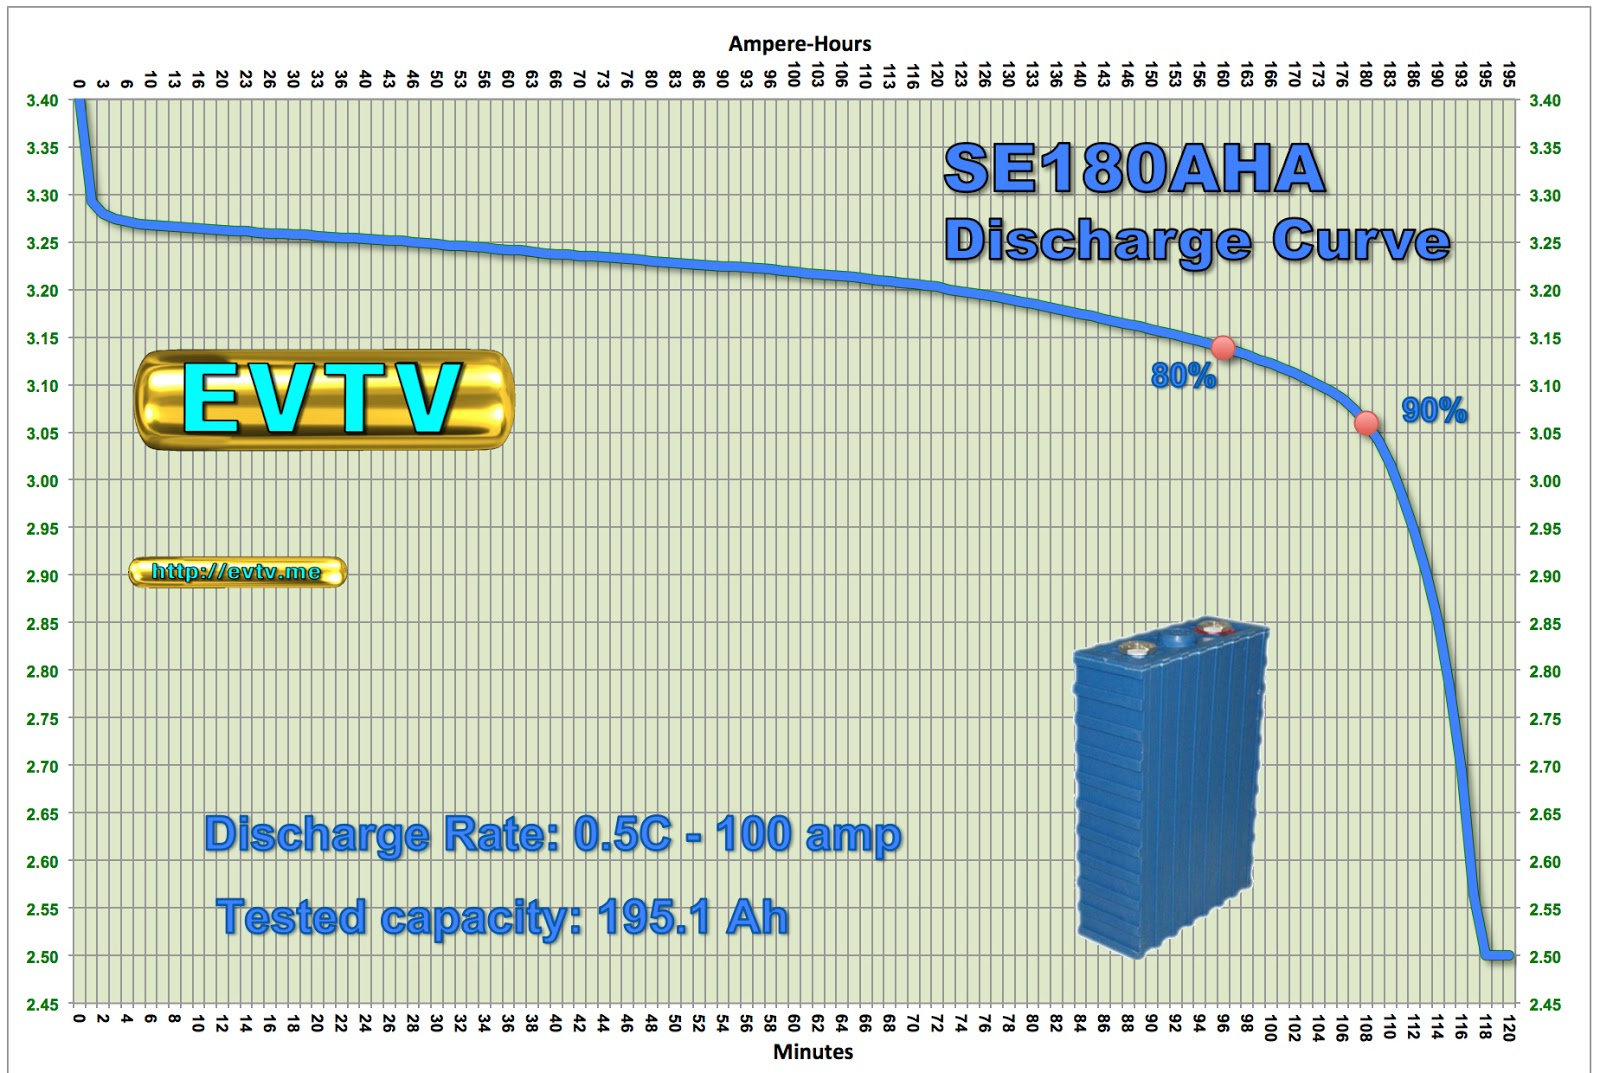 Harada Power Antenna Wiring Diagram 240z Replacement With A Semi Automatic Mq 1 Lithium Discharge Curve Thank You Ev Tv